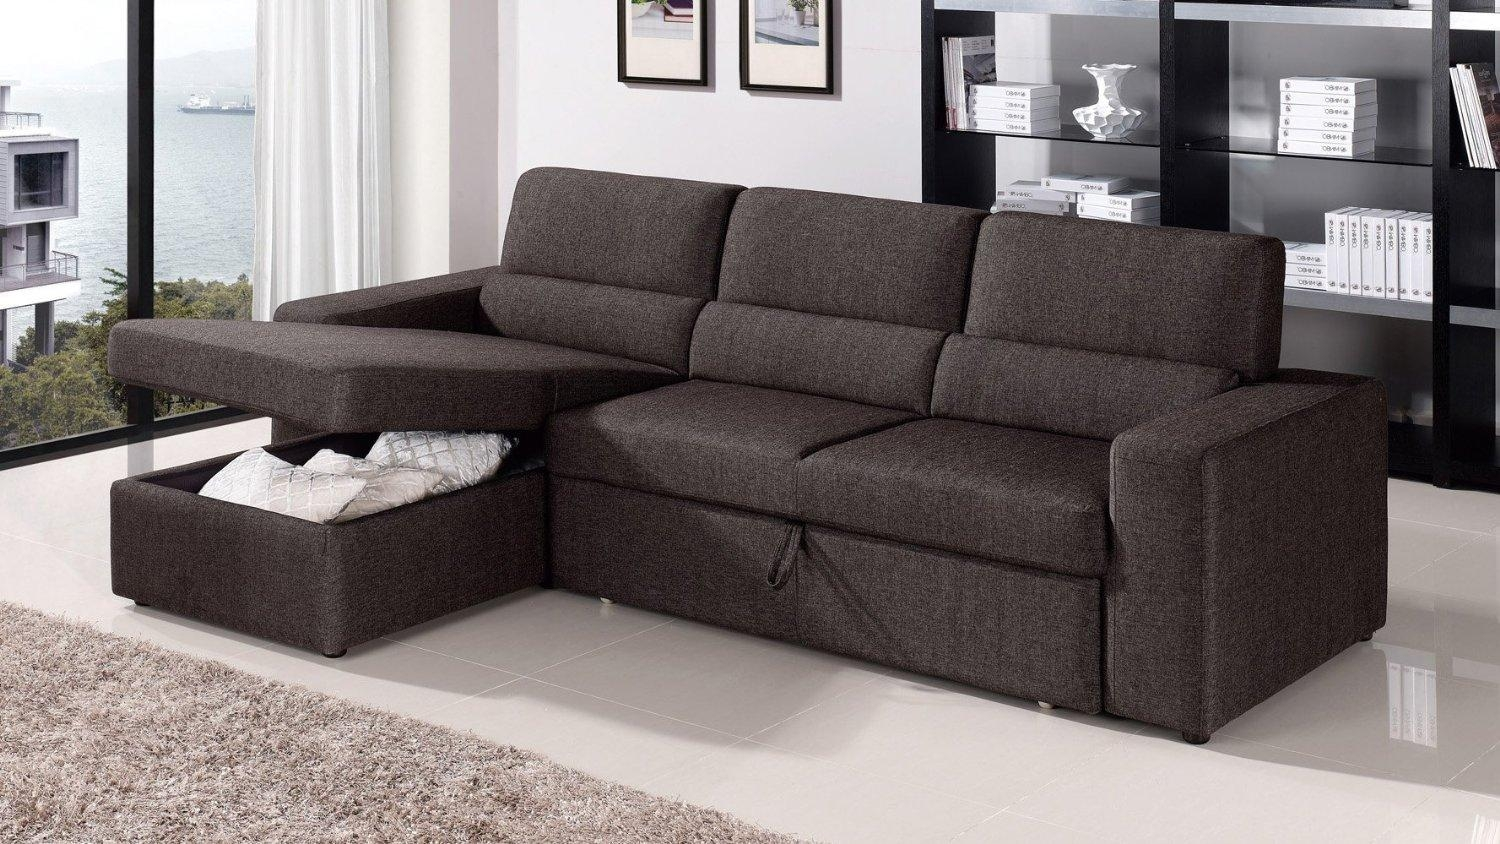 Sofa Sleeper Chaise – Leather Sectional Sofa For Sleeper Recliner Sectional (Image 15 of 20)